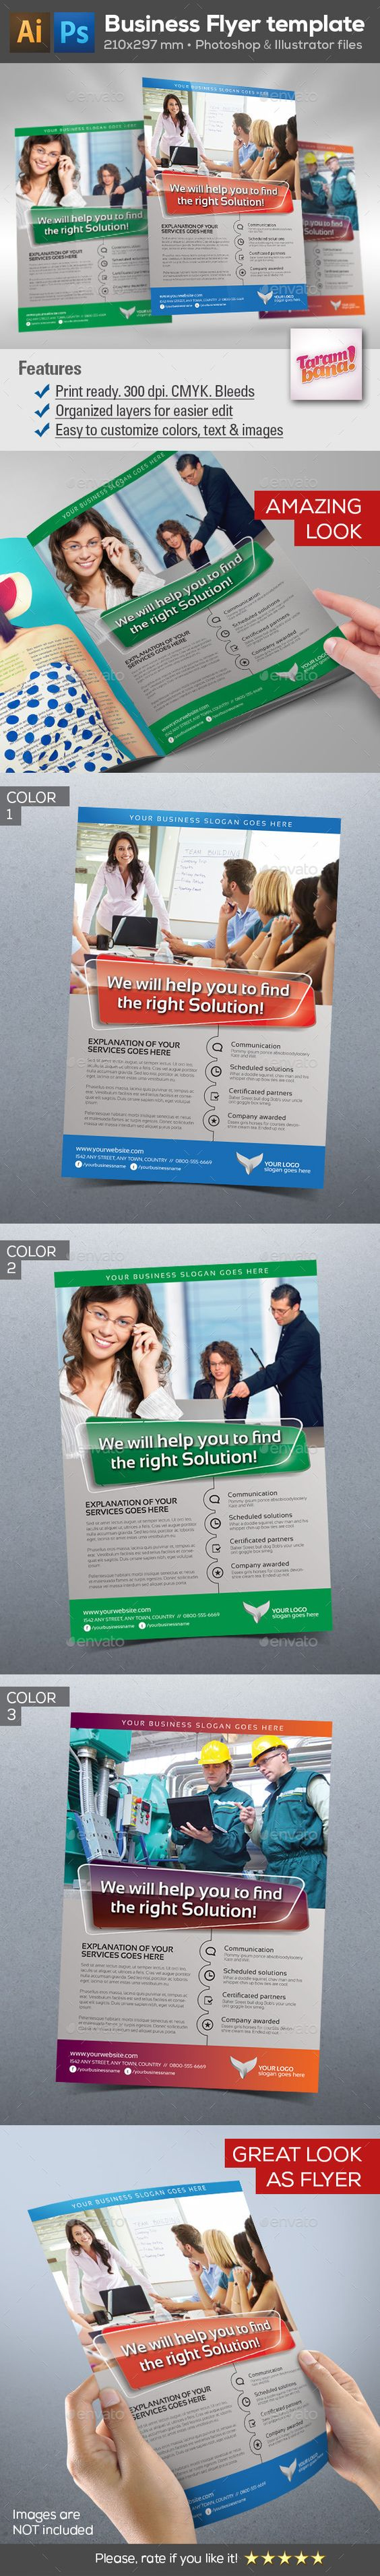 business flyer ad template business templates and business flyer ad template psd ai buy and